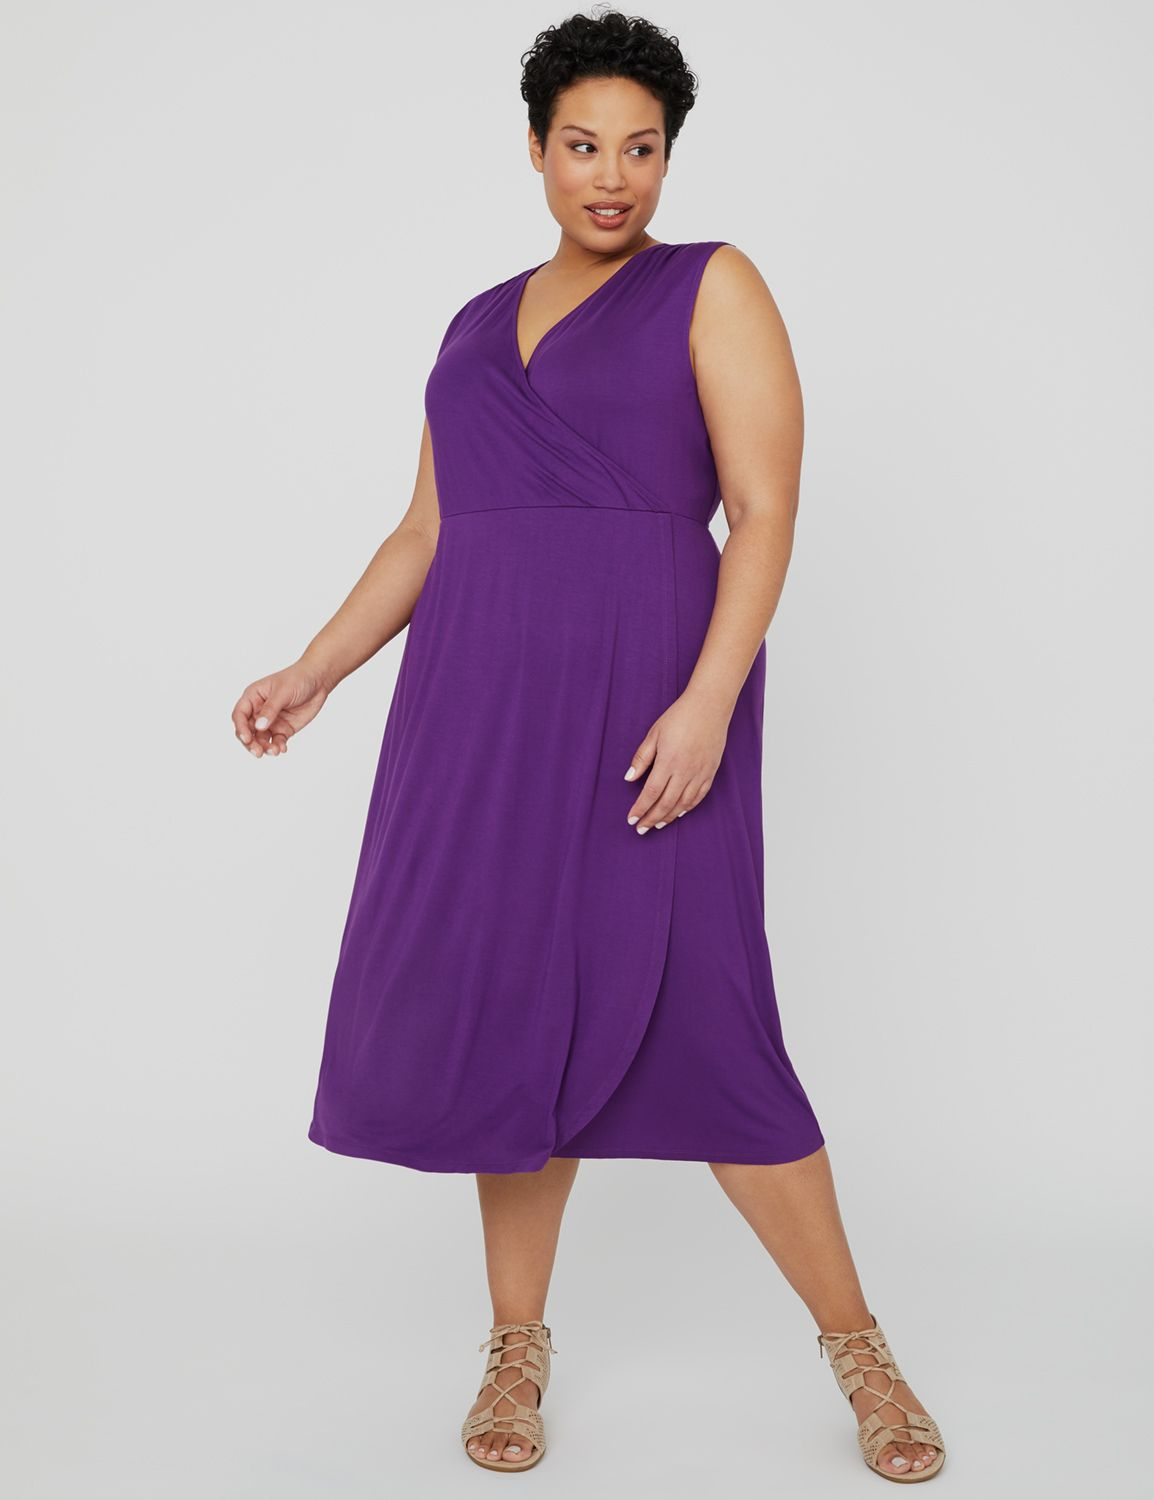 Riverview Wrap Dress 1088151 Vneck Front and Back Maxi E MP-300102358